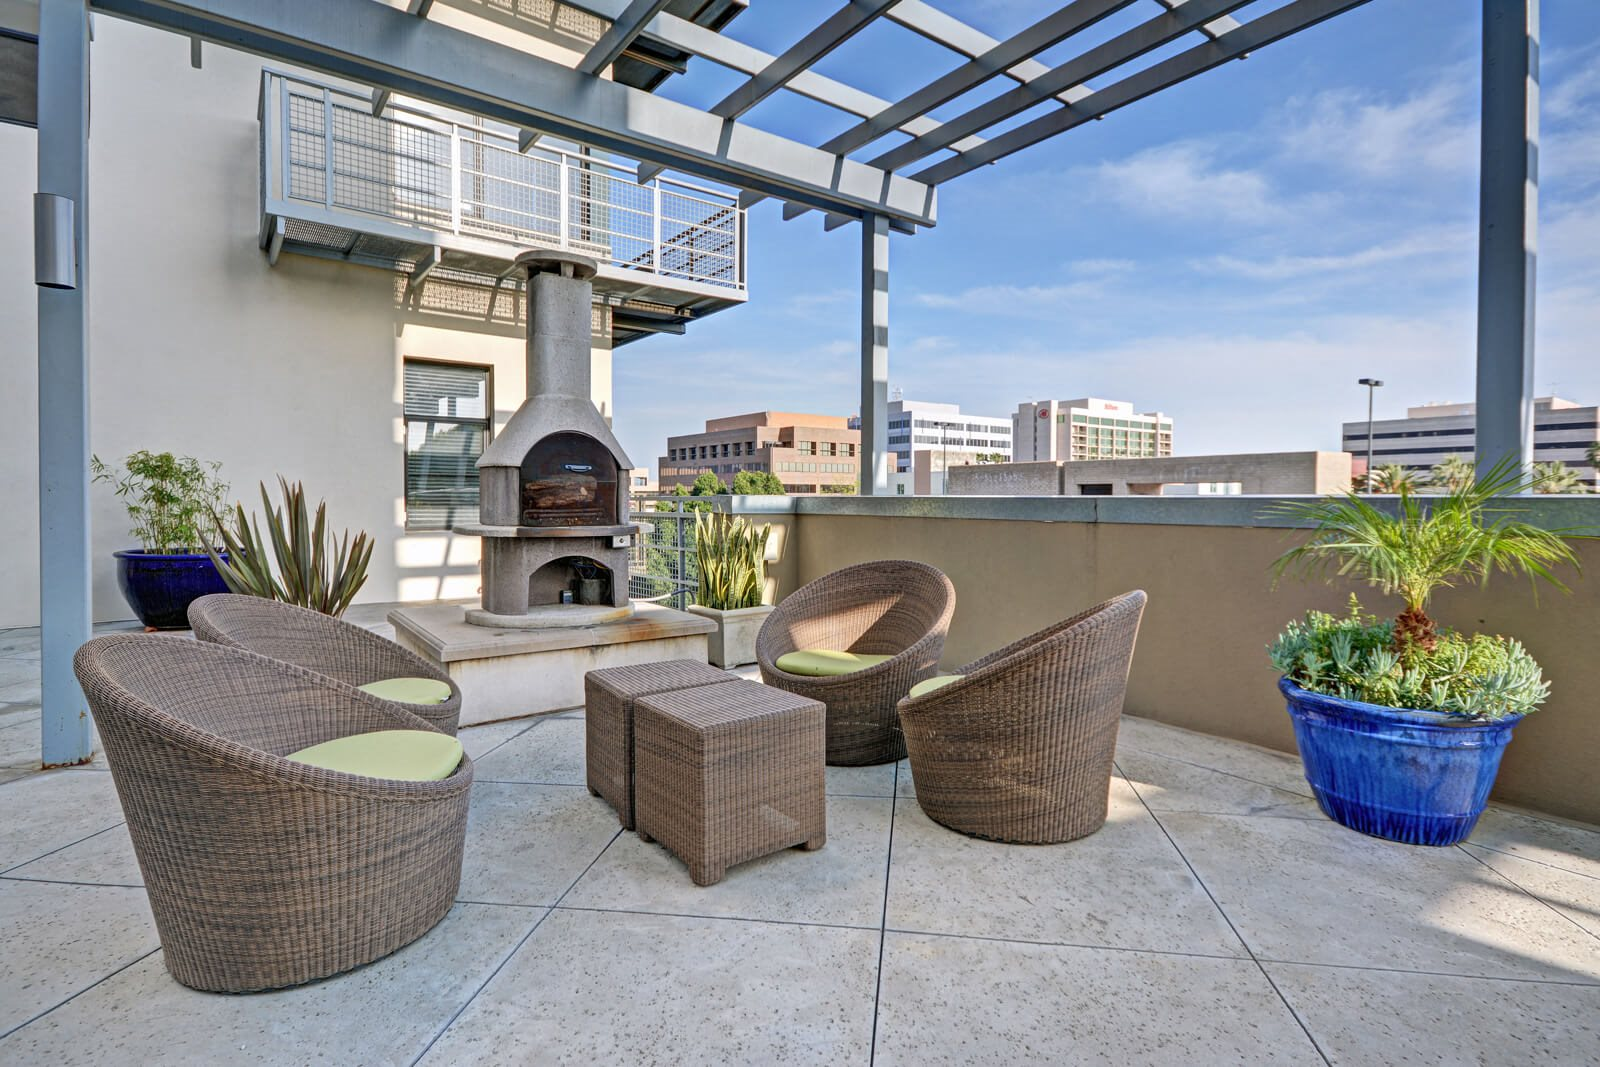 Grand Terrace Lounge with Fireplace at Terraces at Paseo Colorado, Pasadena, 91101